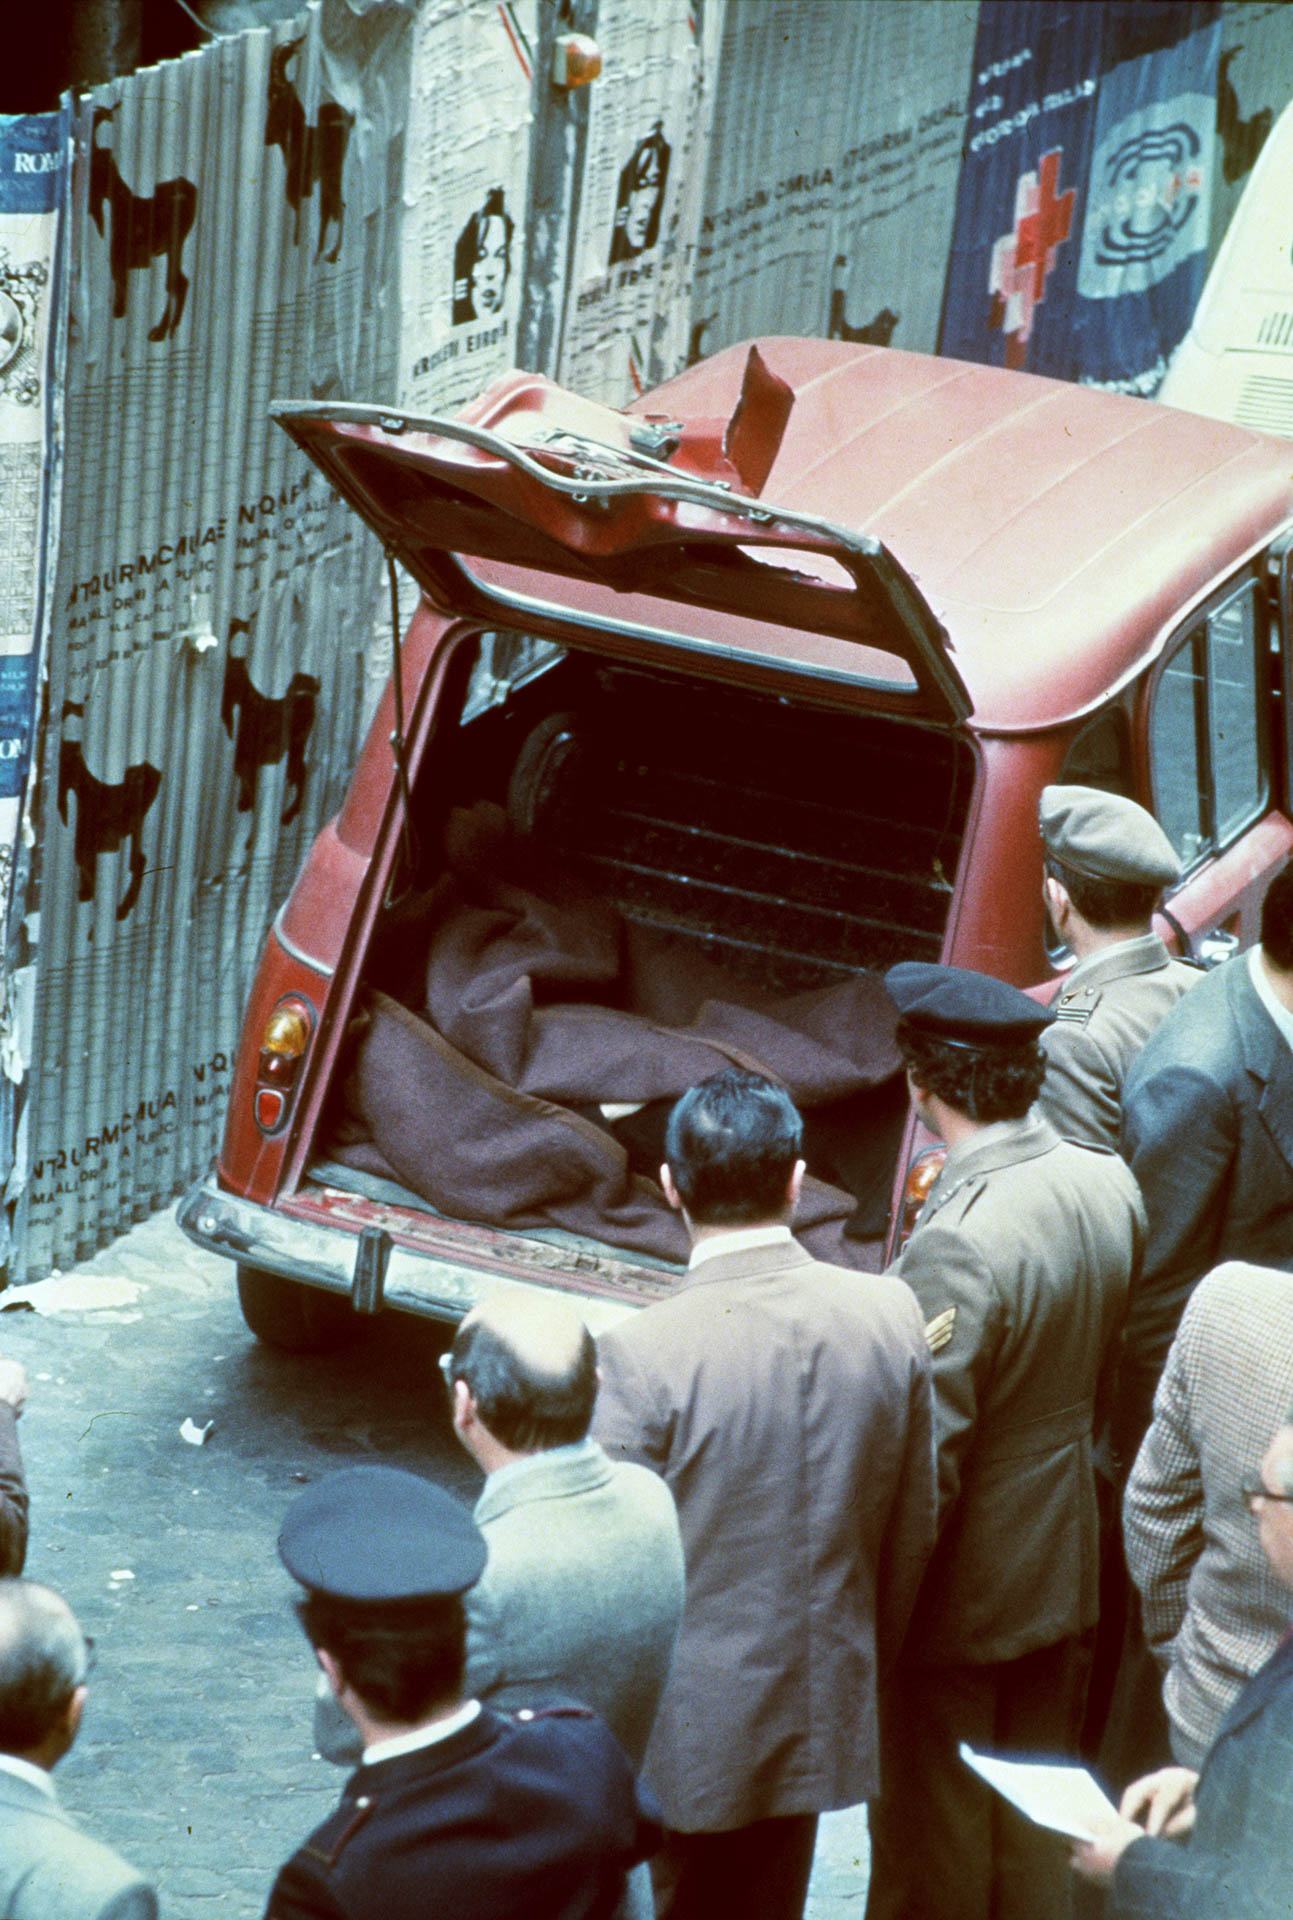 Rome, Italy 9 May 1978 The discovery of Aldo Moro's corpse inside the red Renault in Caetani street.